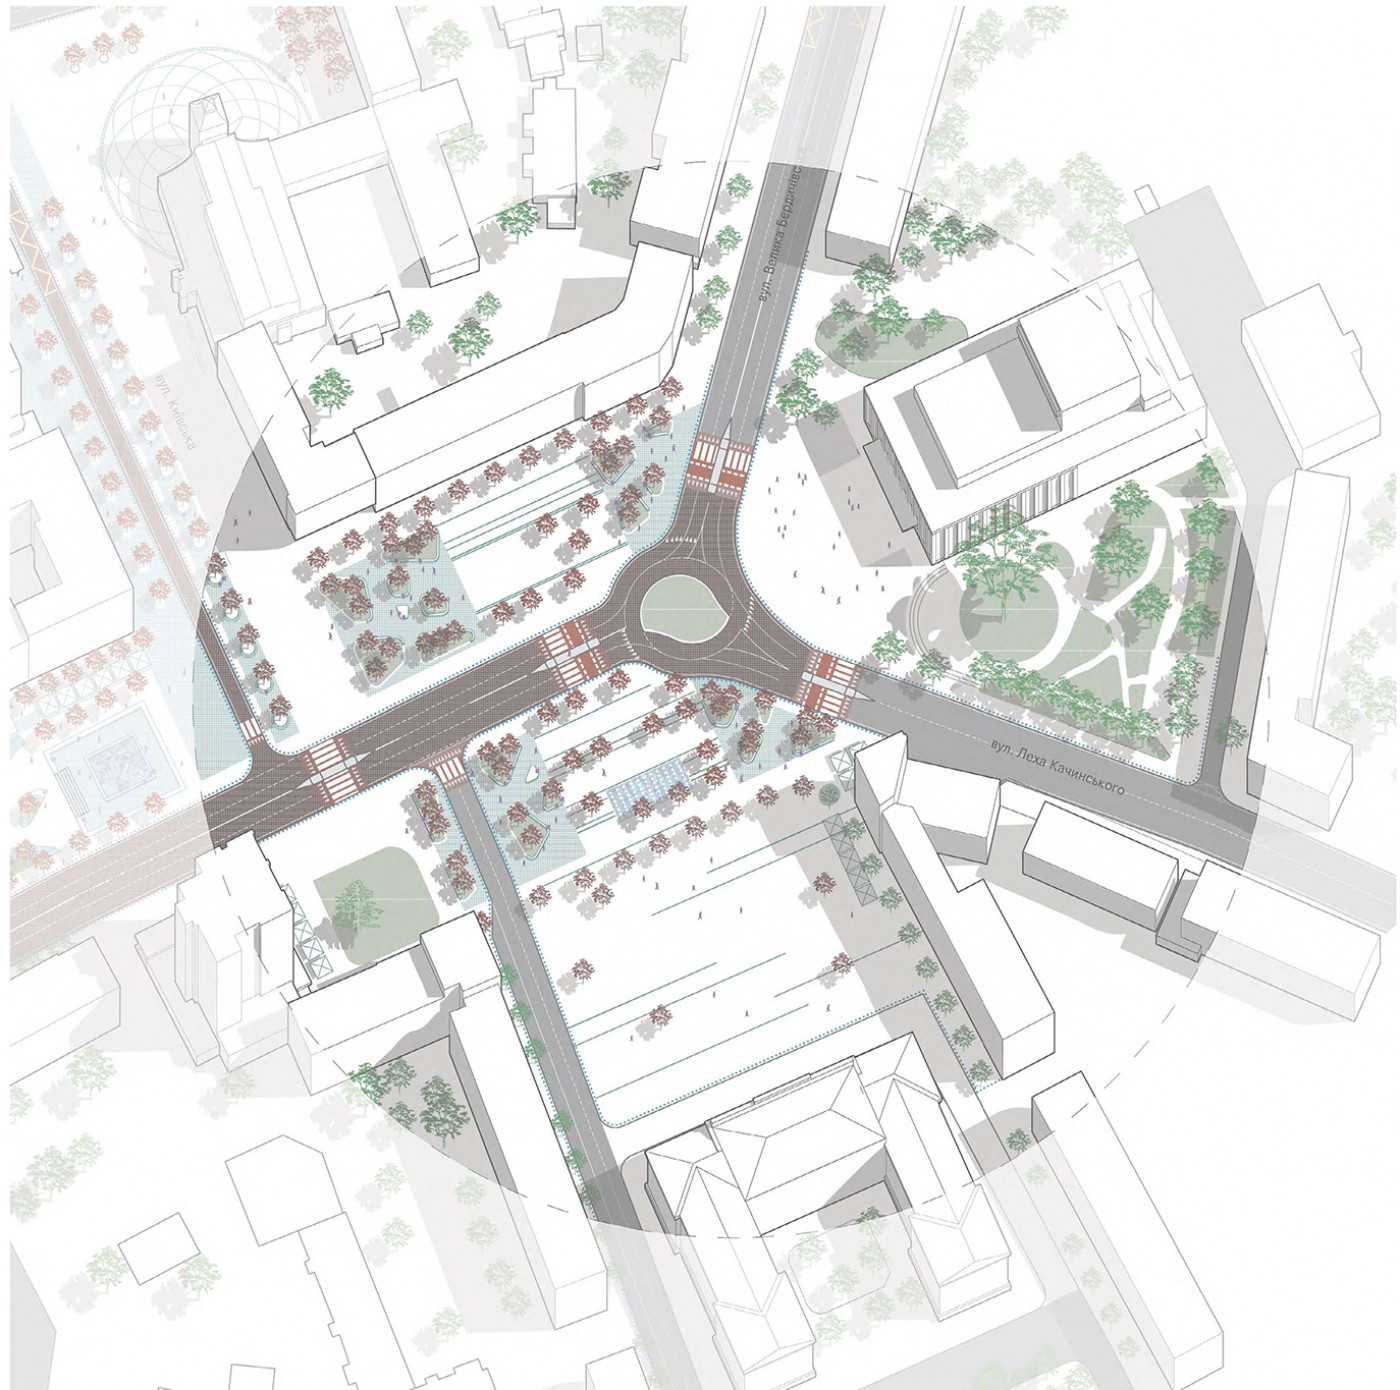 Soborny Square / The concept of reconstruction of the Soborny and Victory Squares